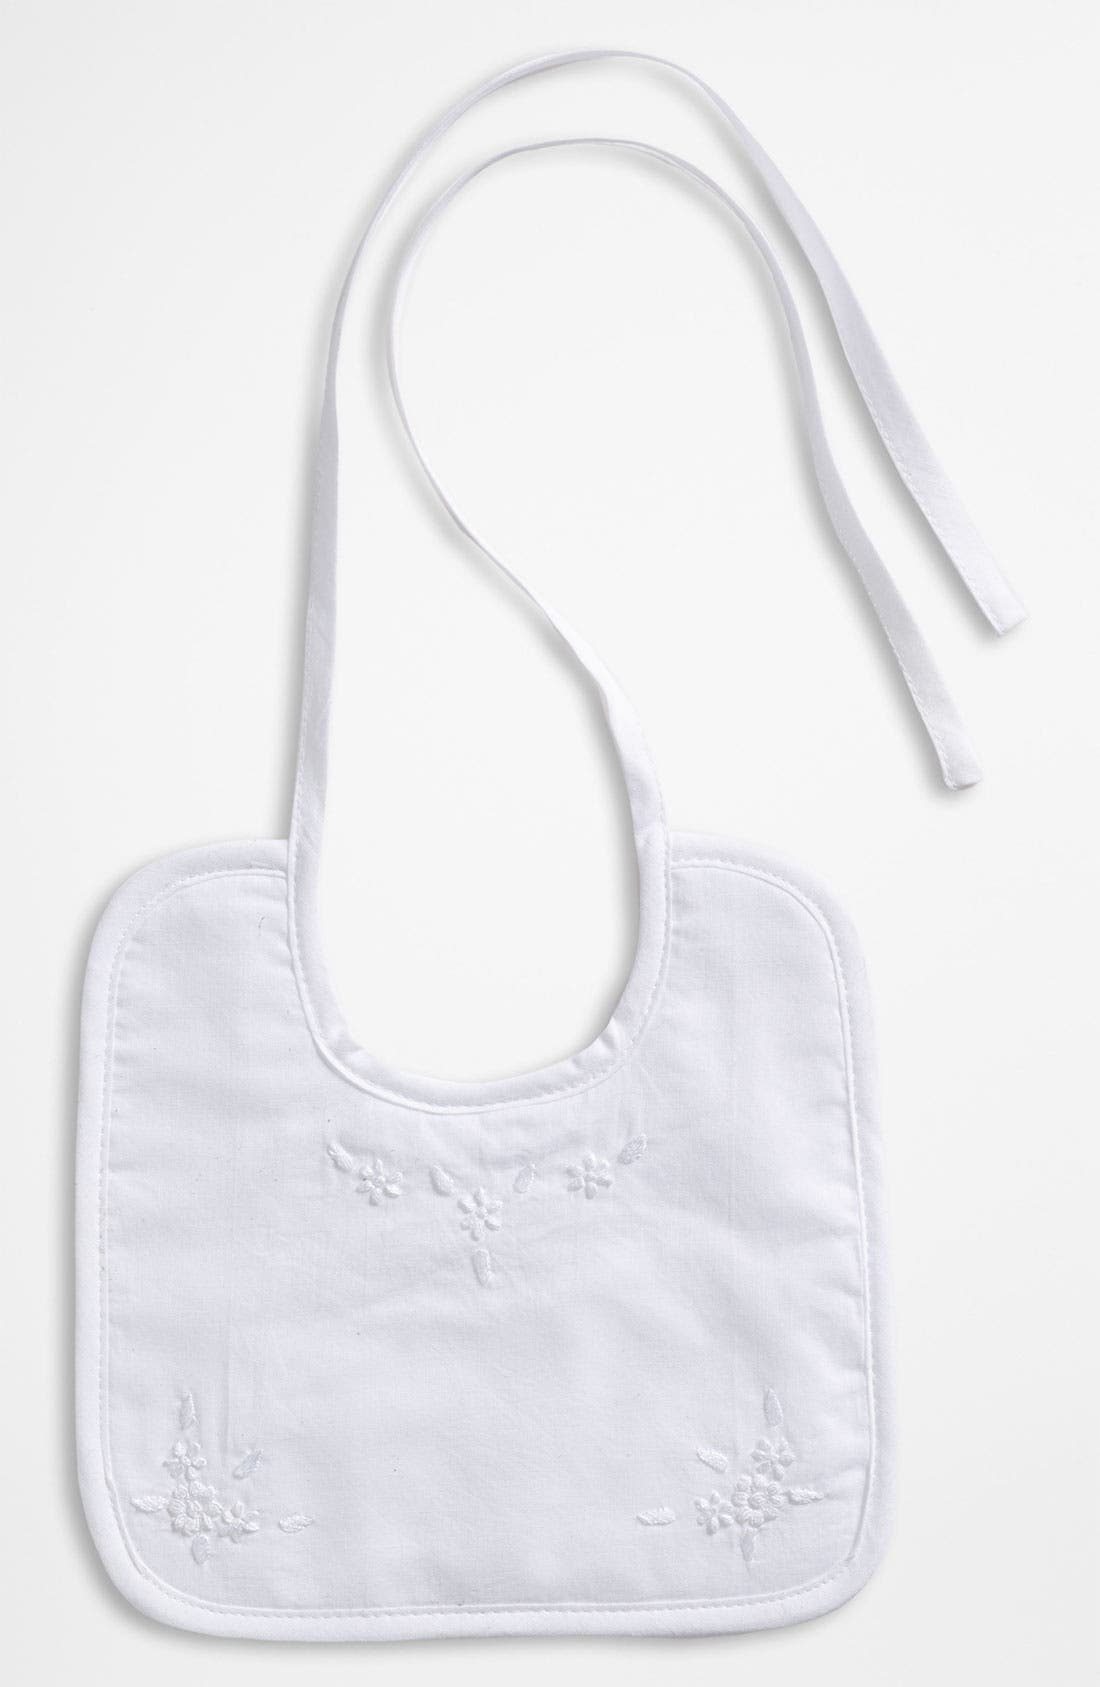 Main Image - Little Things Mean a Lot Embroidered Bib